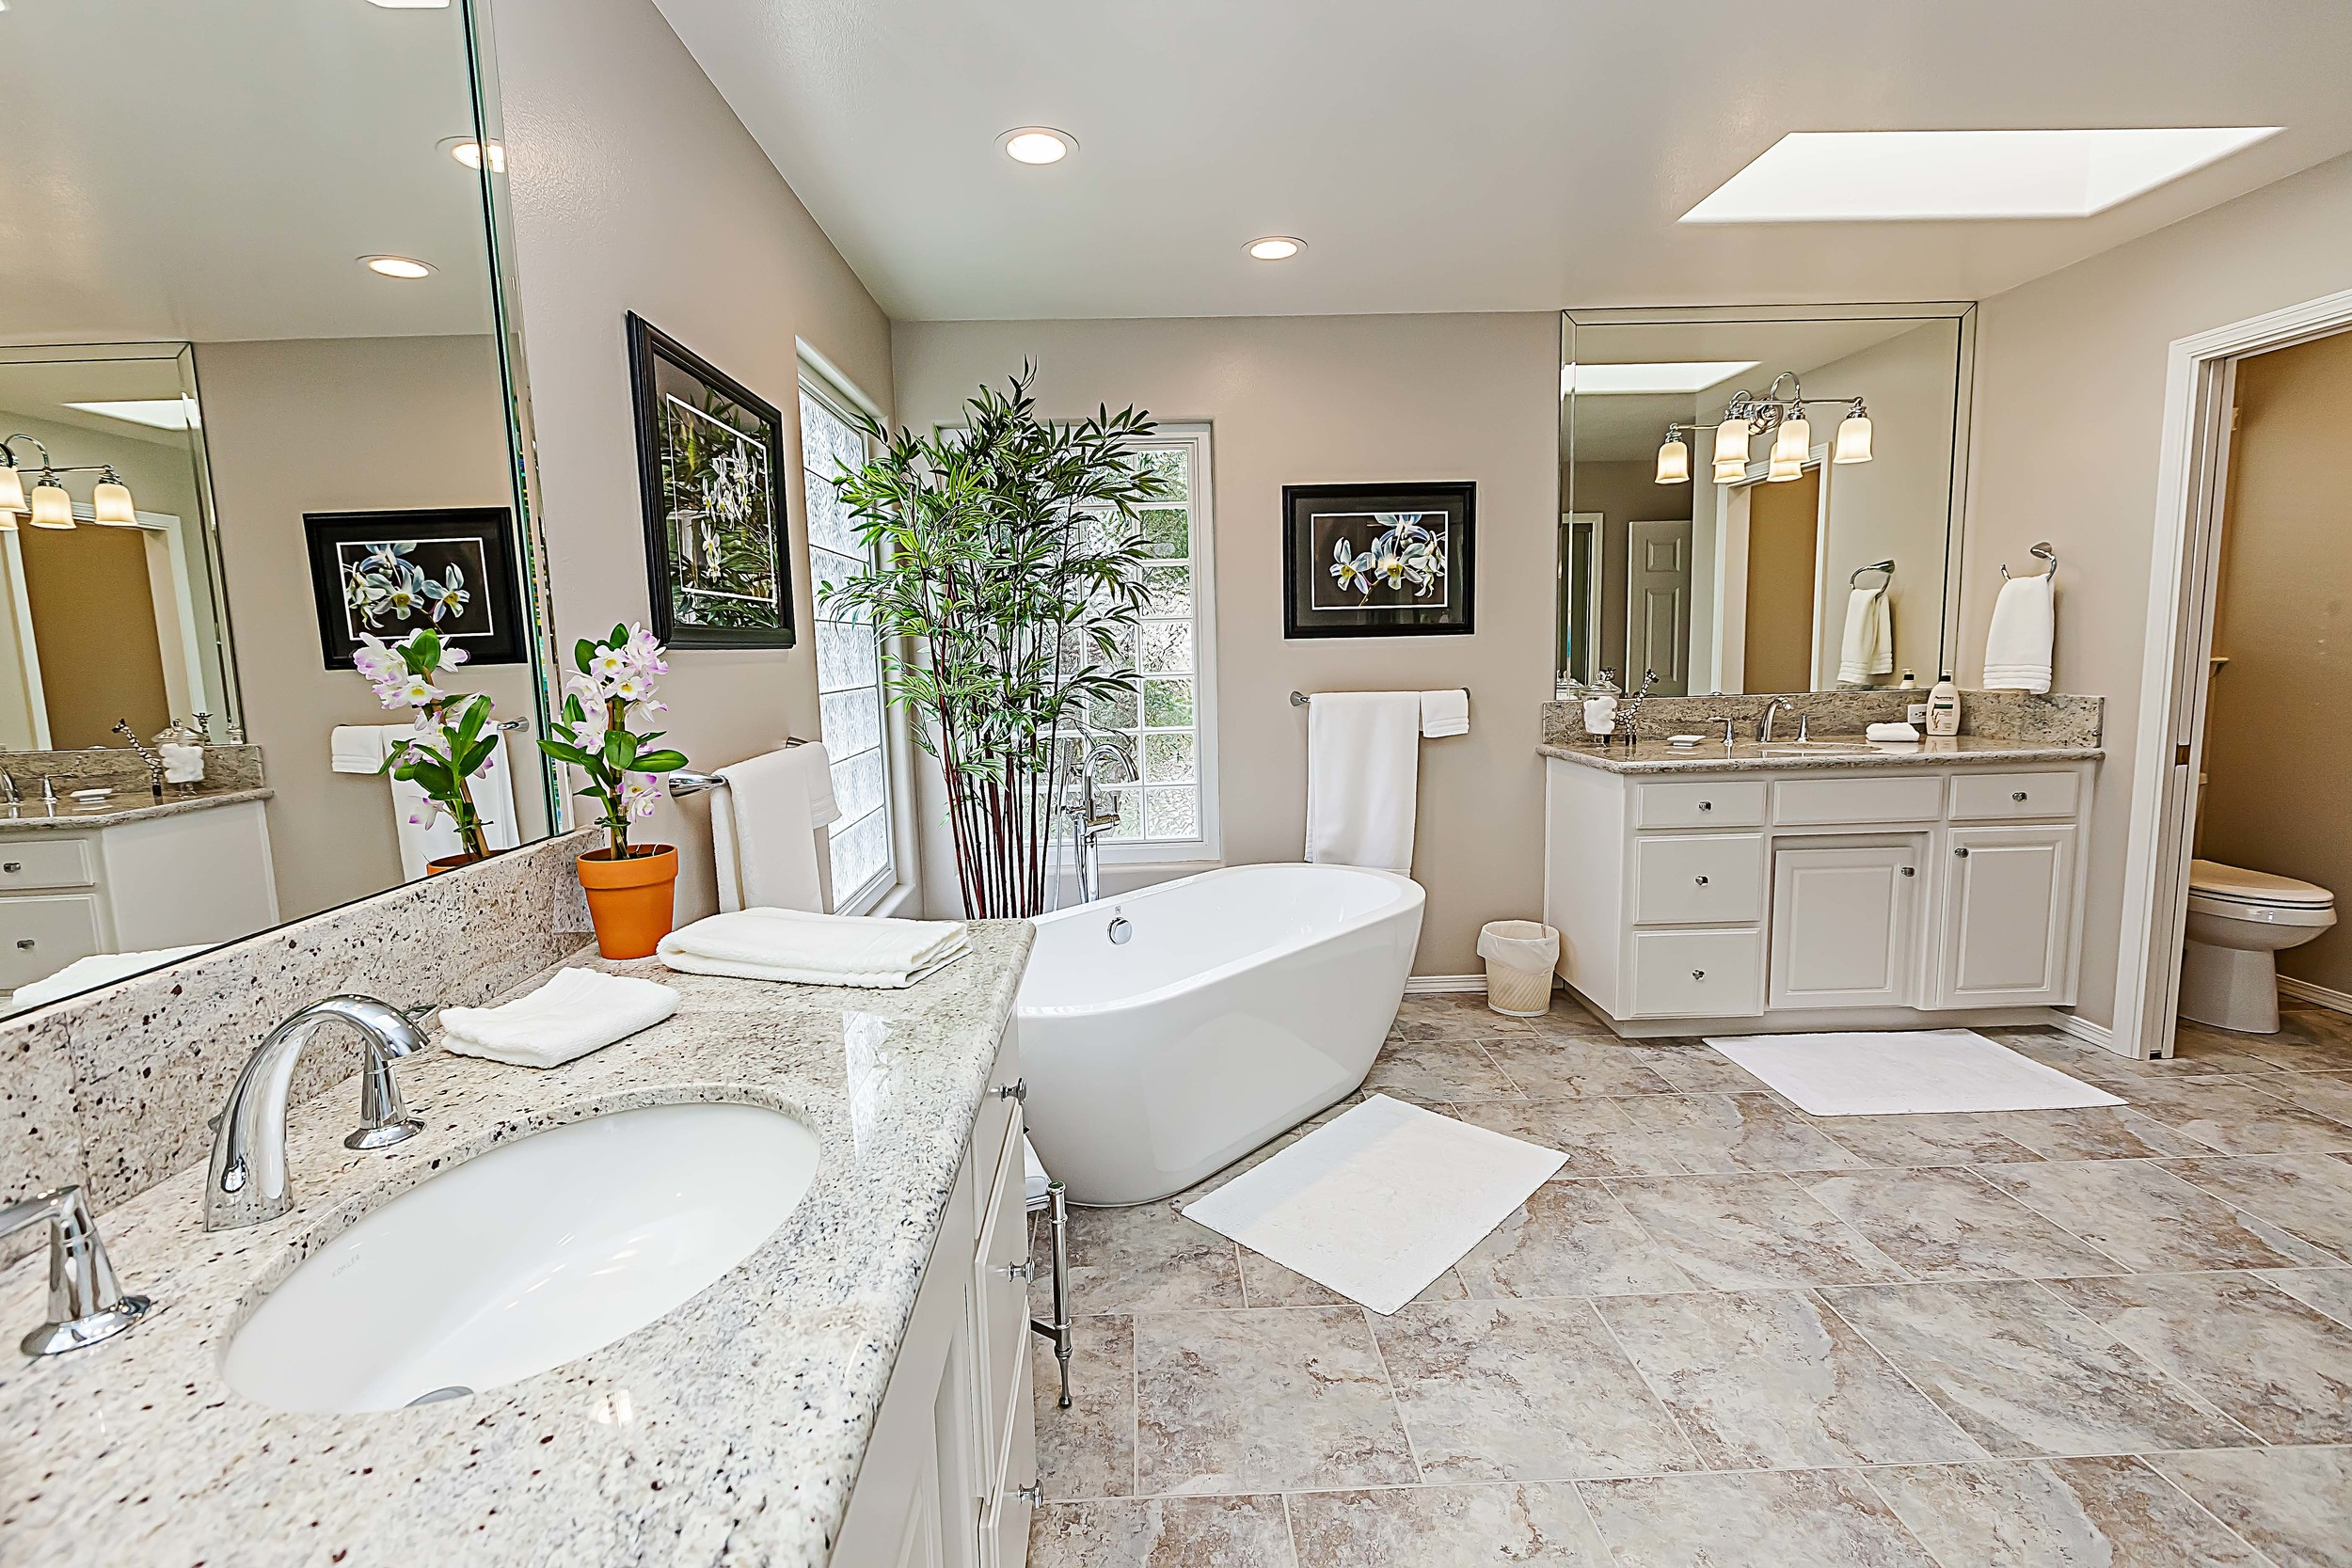 Should You Do Your Own Bathroom Renovation?